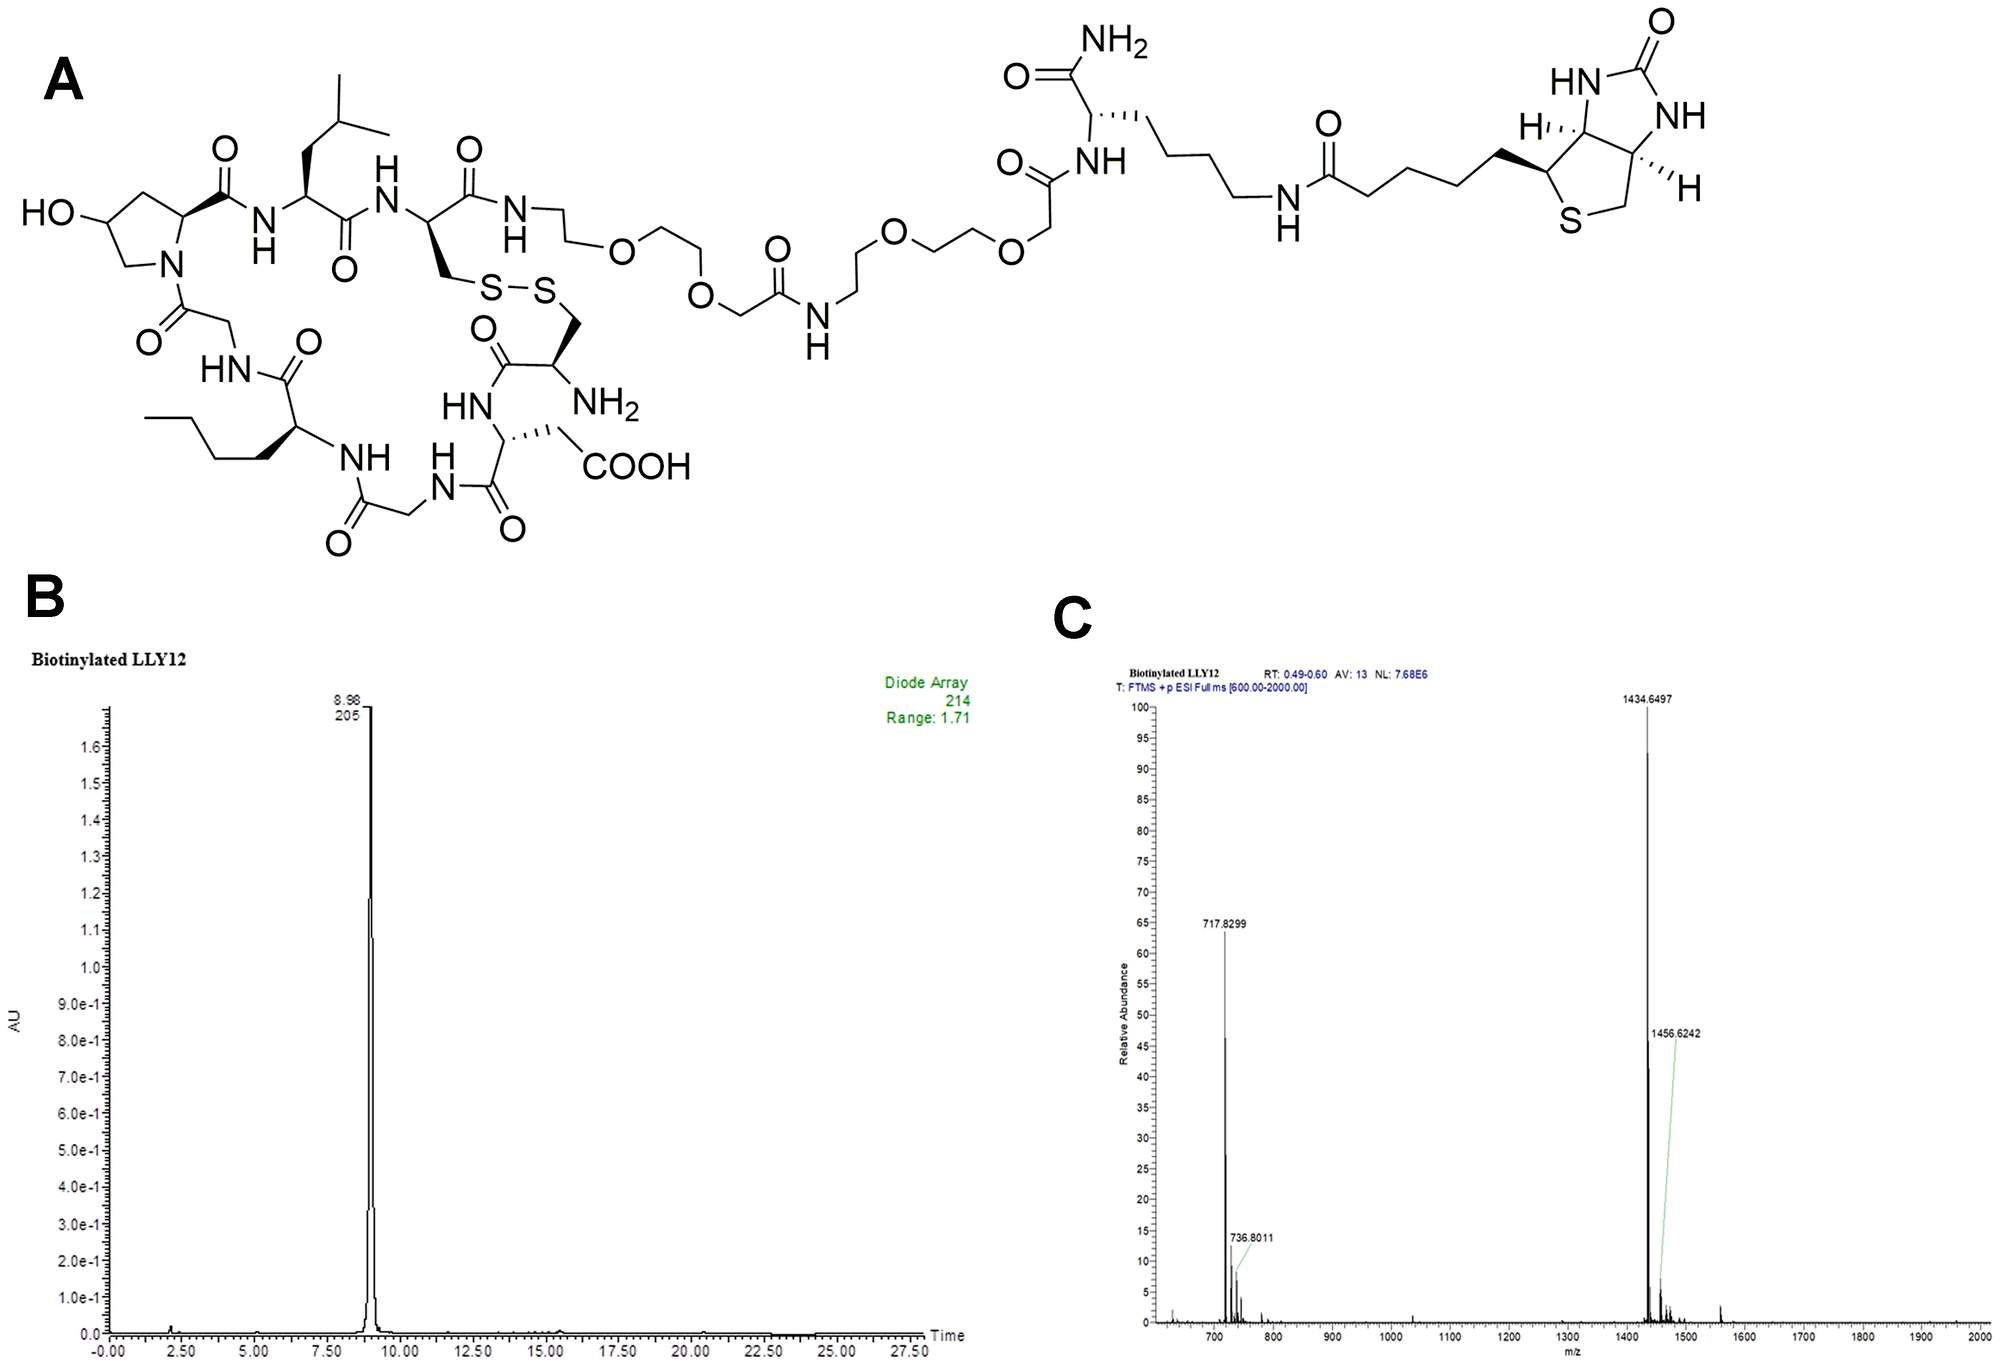 Structure and characterization of biotinylated LLY12.